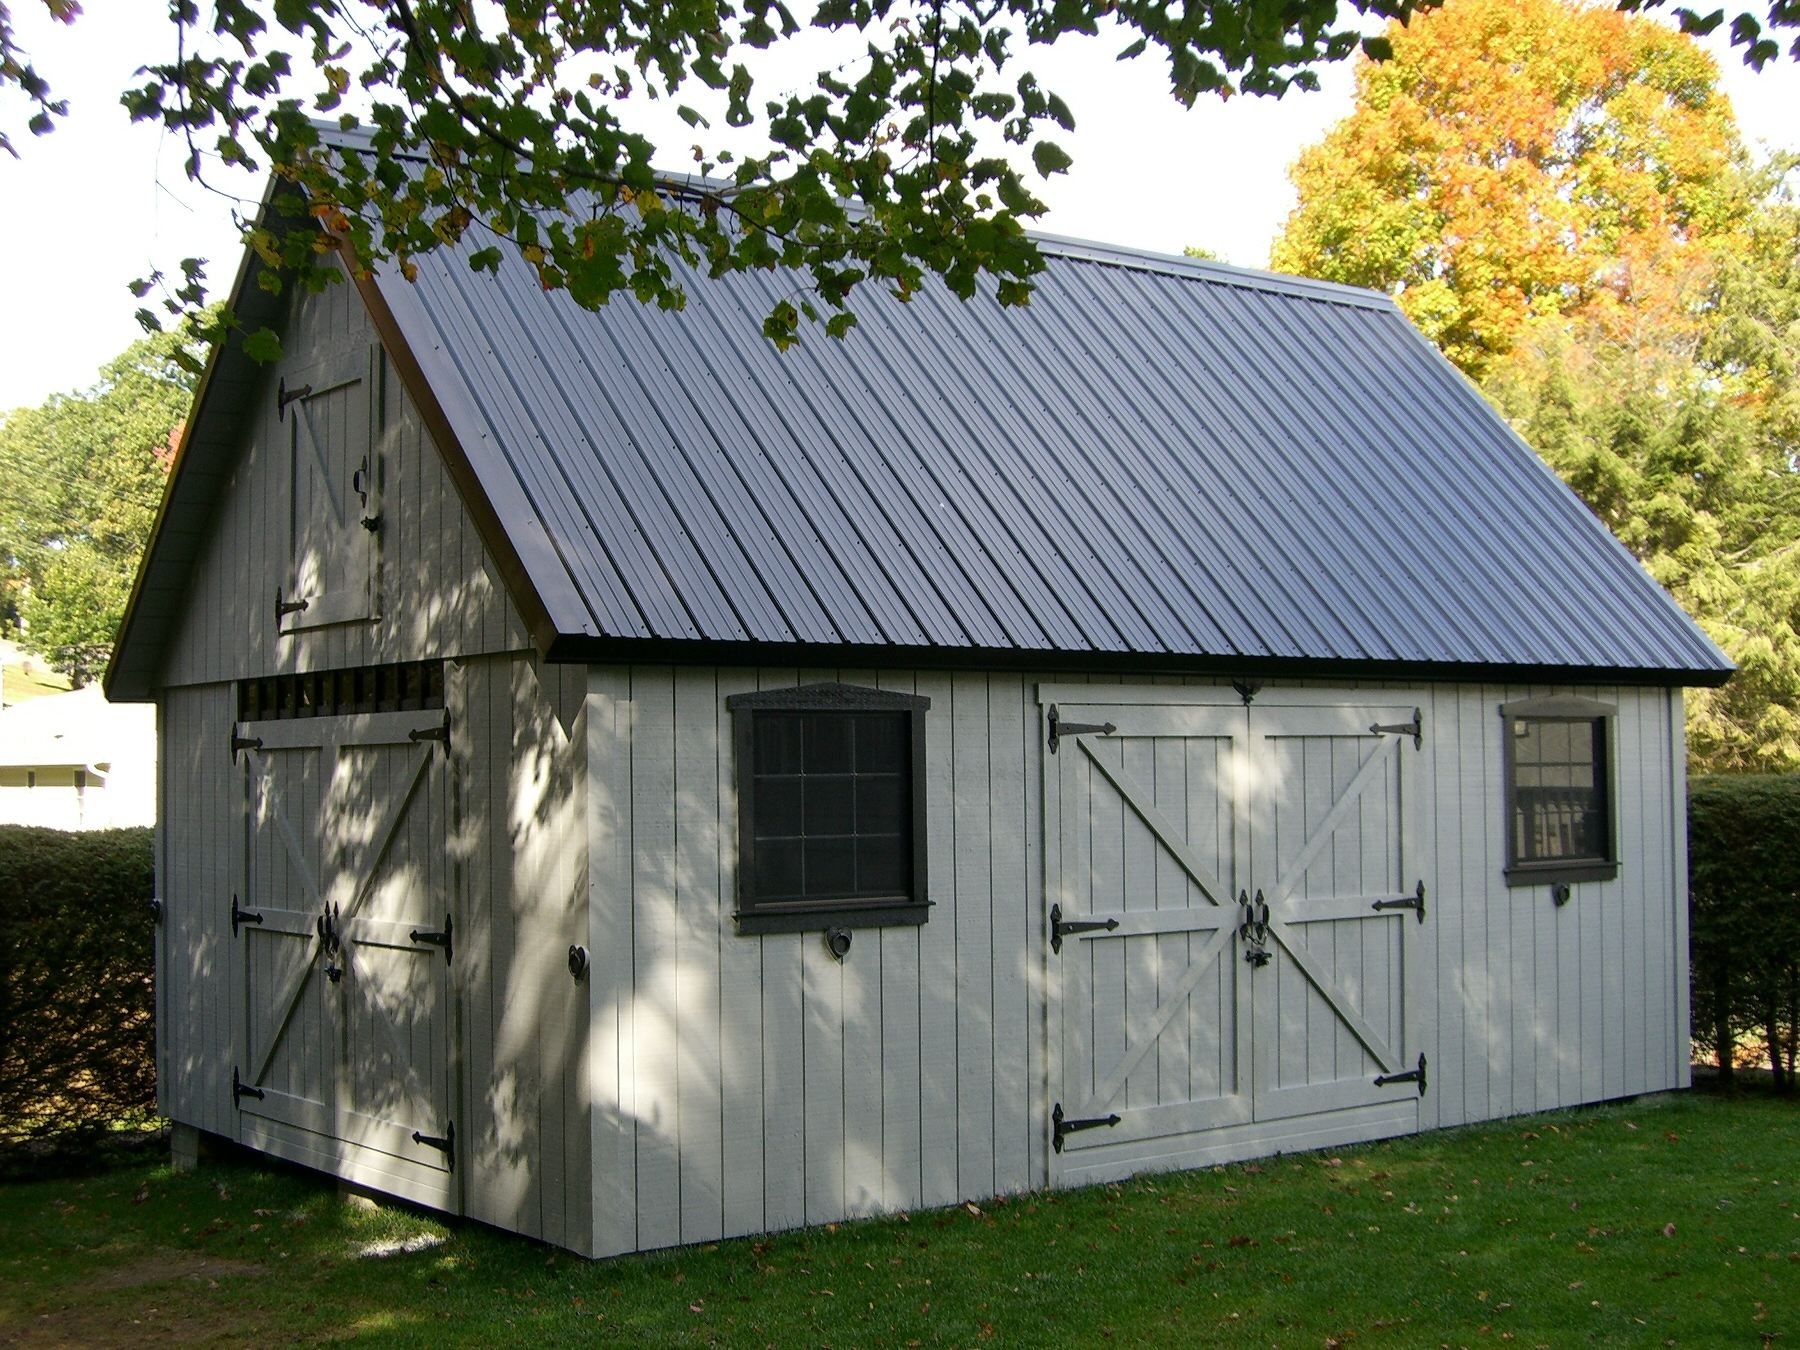 16' x 24' Post and Beam Barn